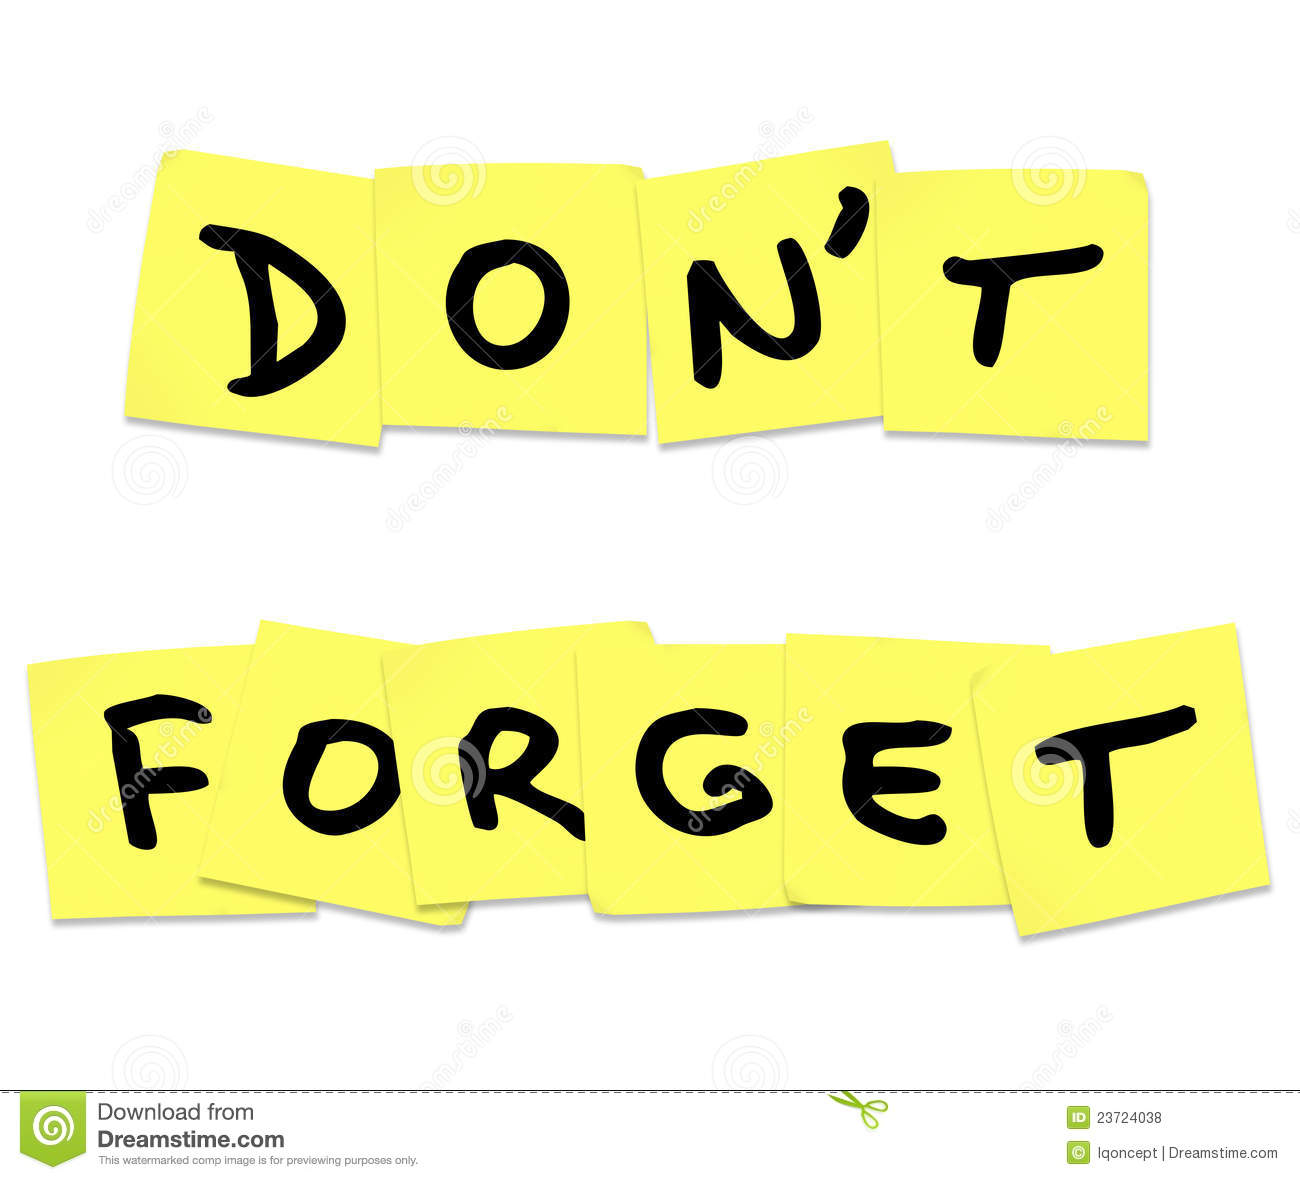 don-t-forget-reminder-words-yellow-sticky-notes-23724038